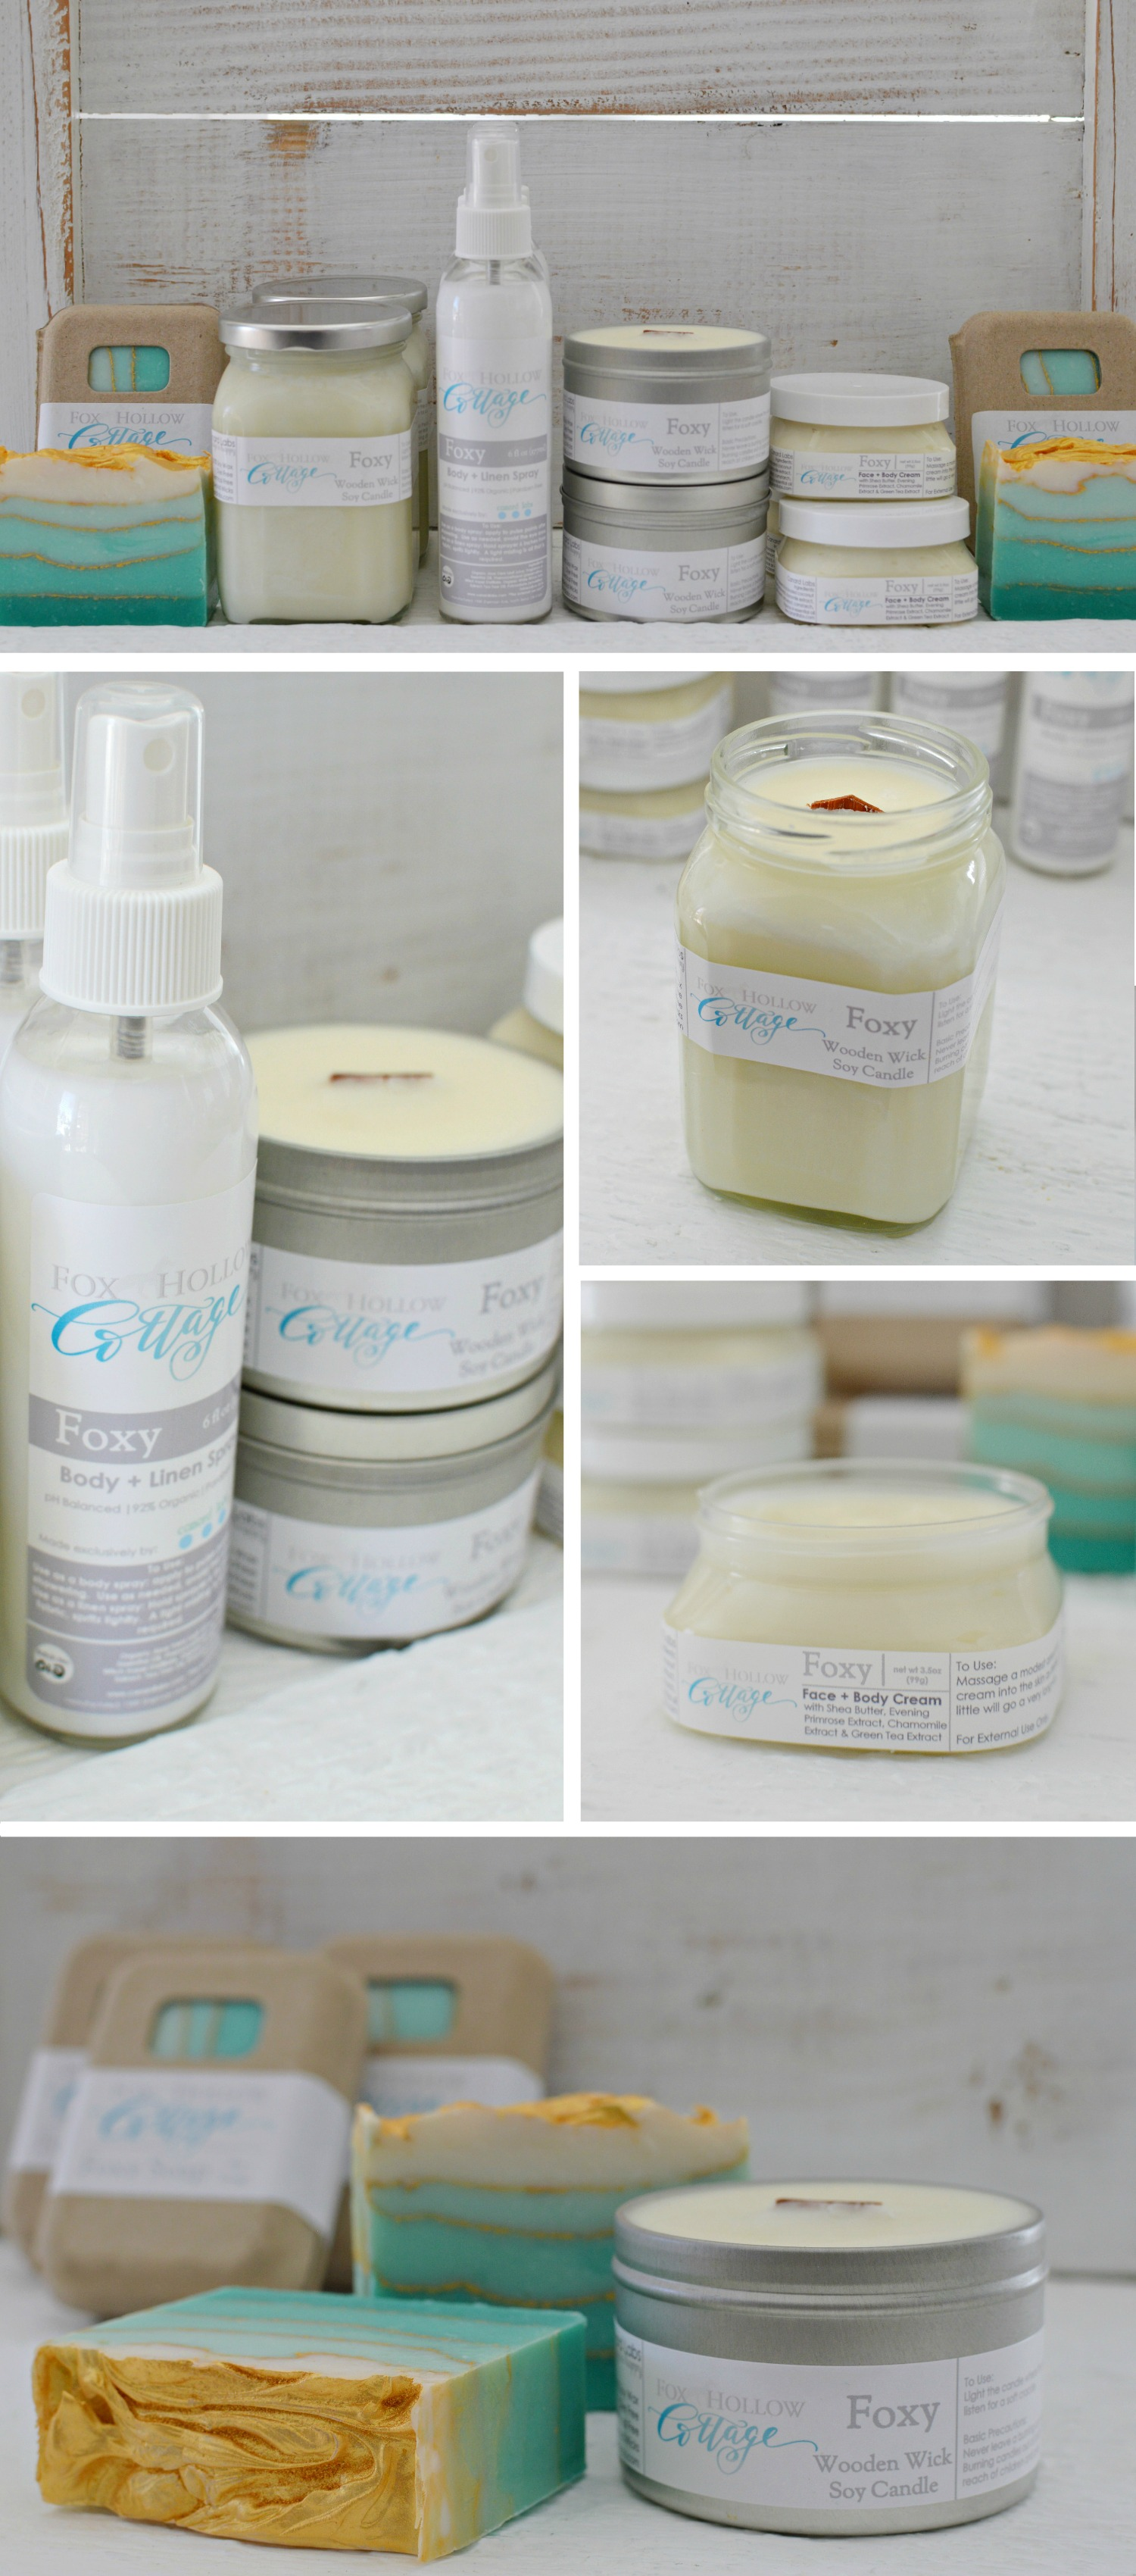 FOXY foxhollowcotttage.com Fox Hollow Cottage Home & Body Fragrance Line